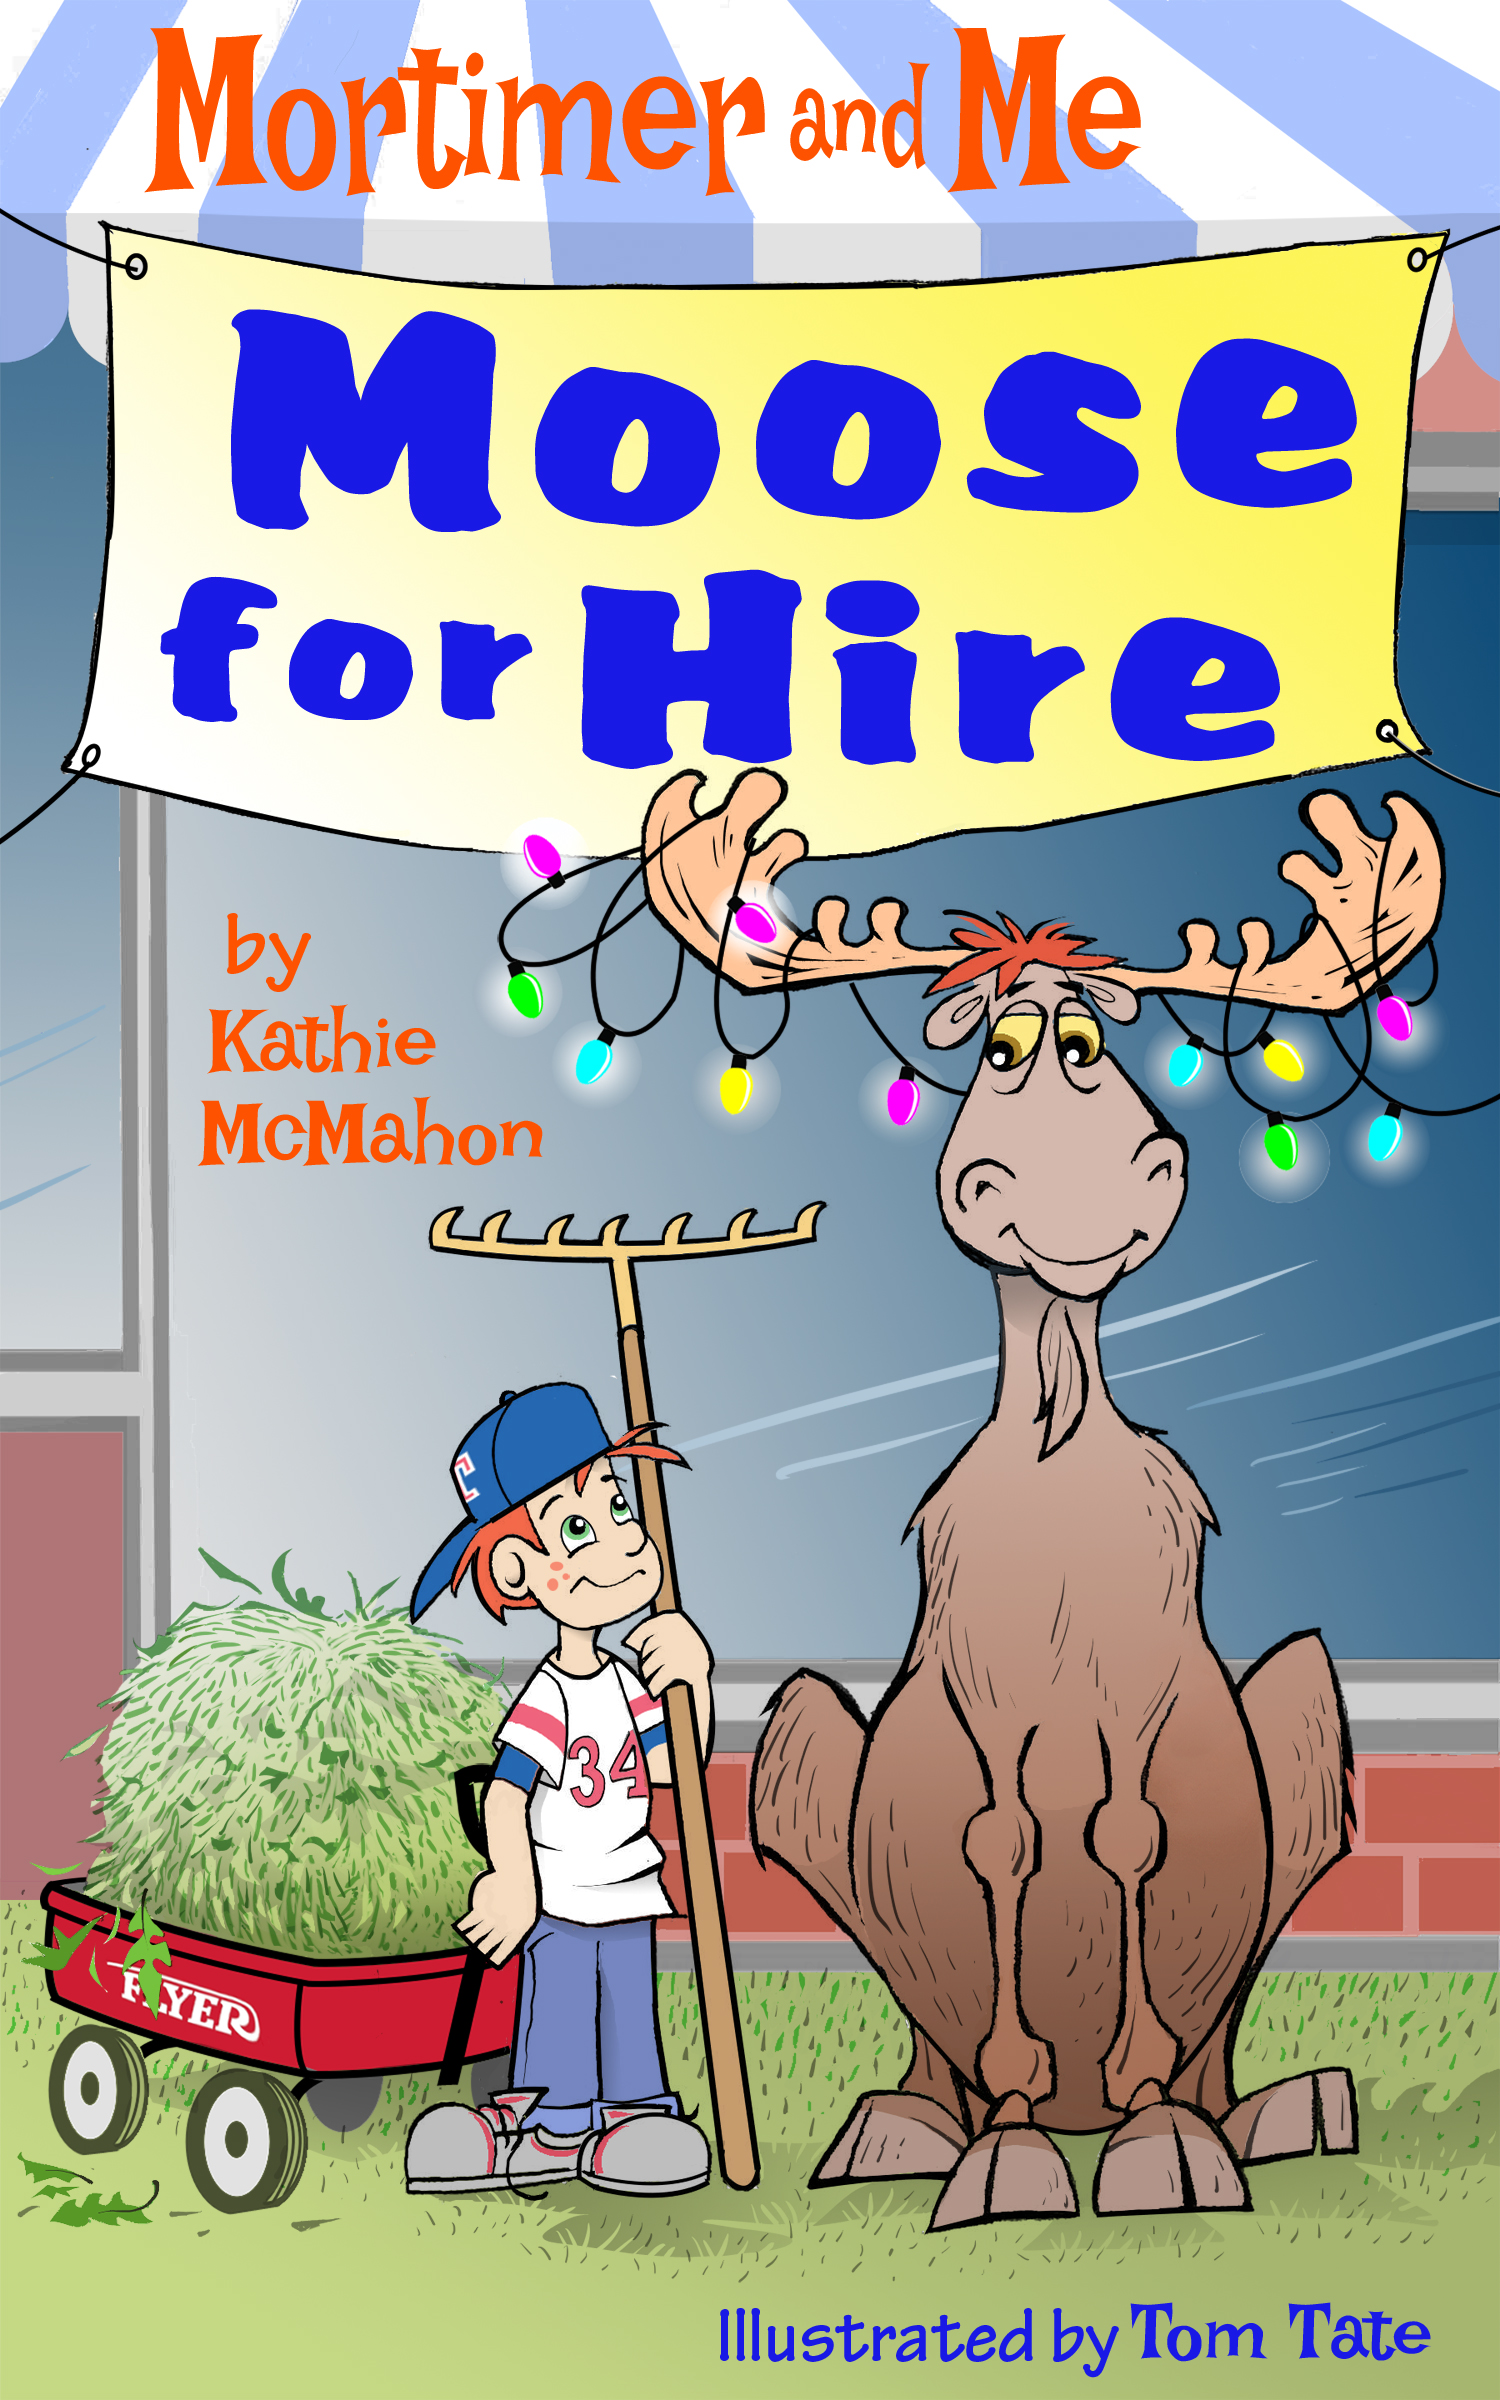 Mortimer and Me: Moose For Hire Author: Kathie McMahon Publisher Name: Pearl White Books Date of Publication: October 30, 2020